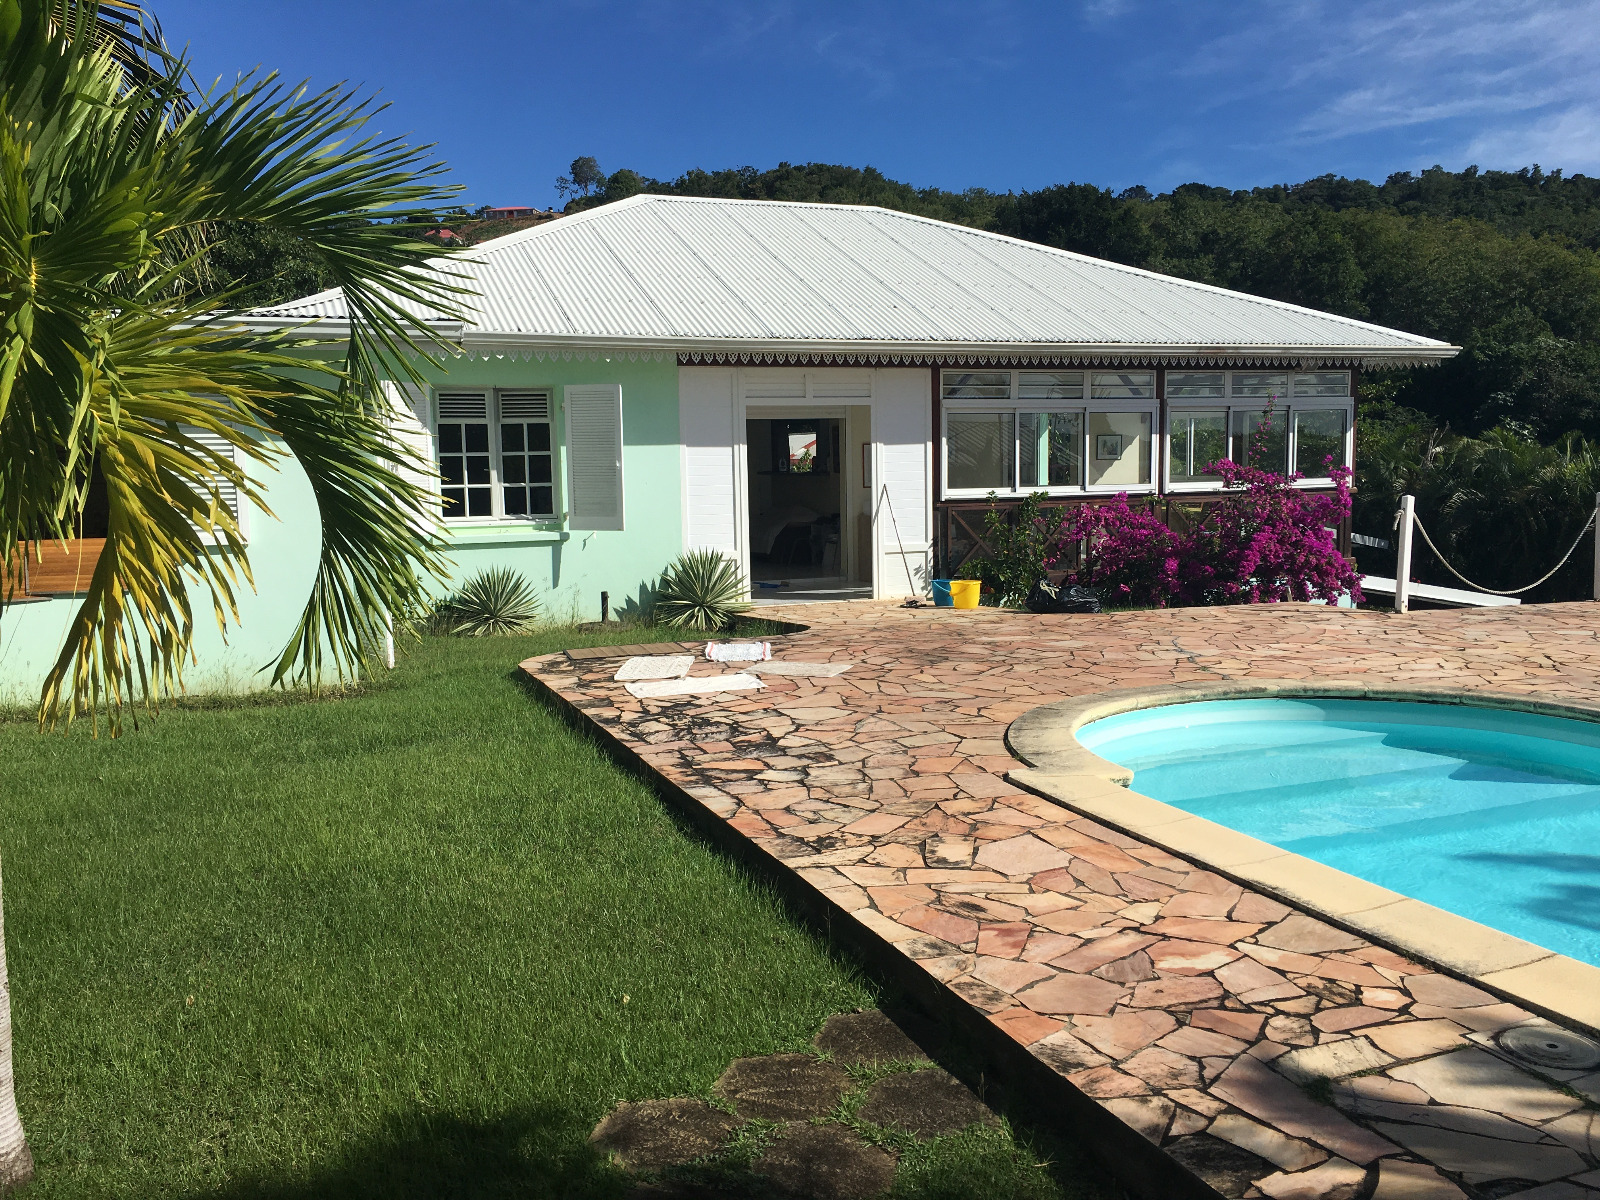 Le robert 97231 belle maison f6 f1 en lotissement for Achat de maison en martinique